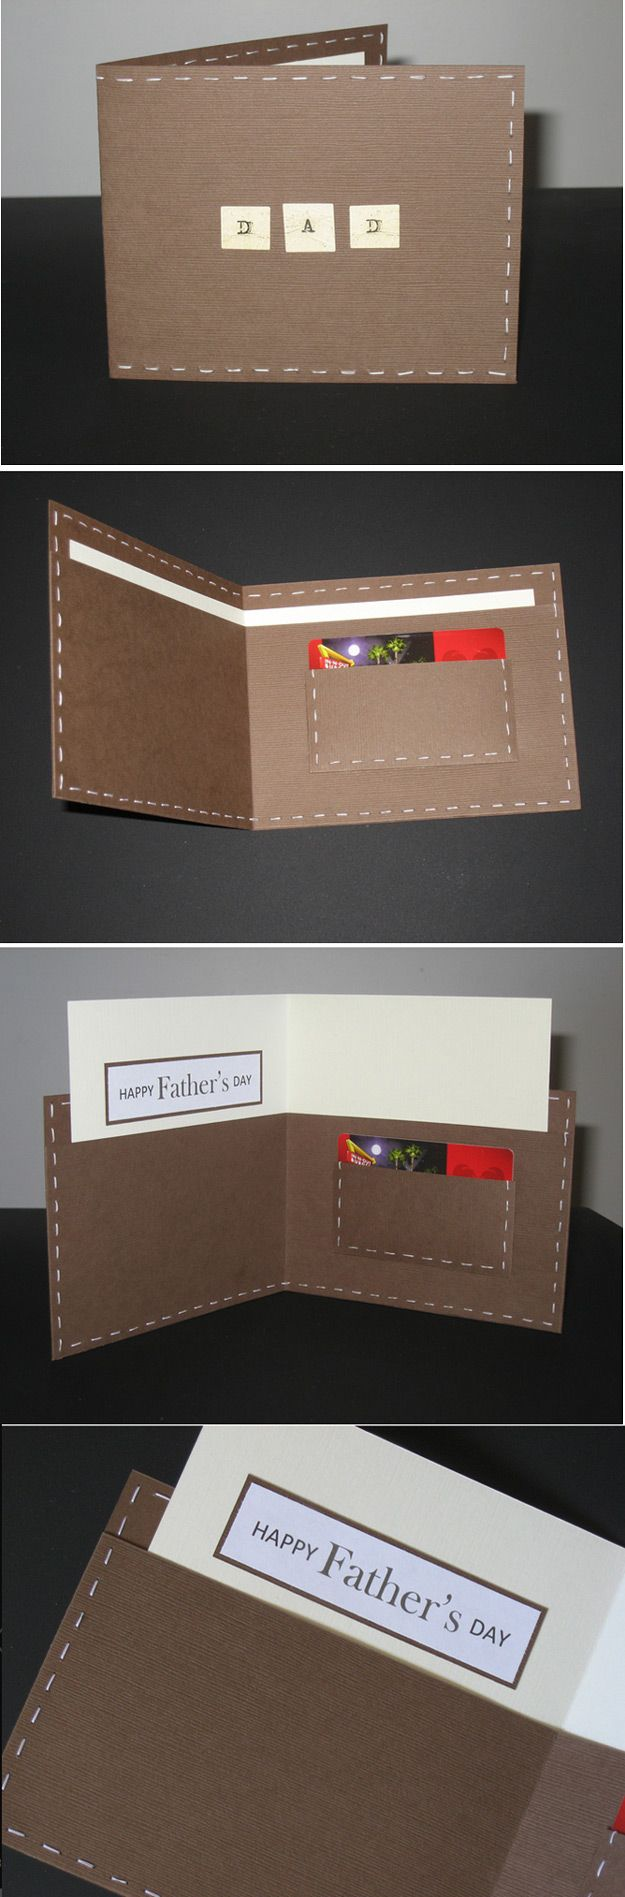 Easy DIY Projects 12